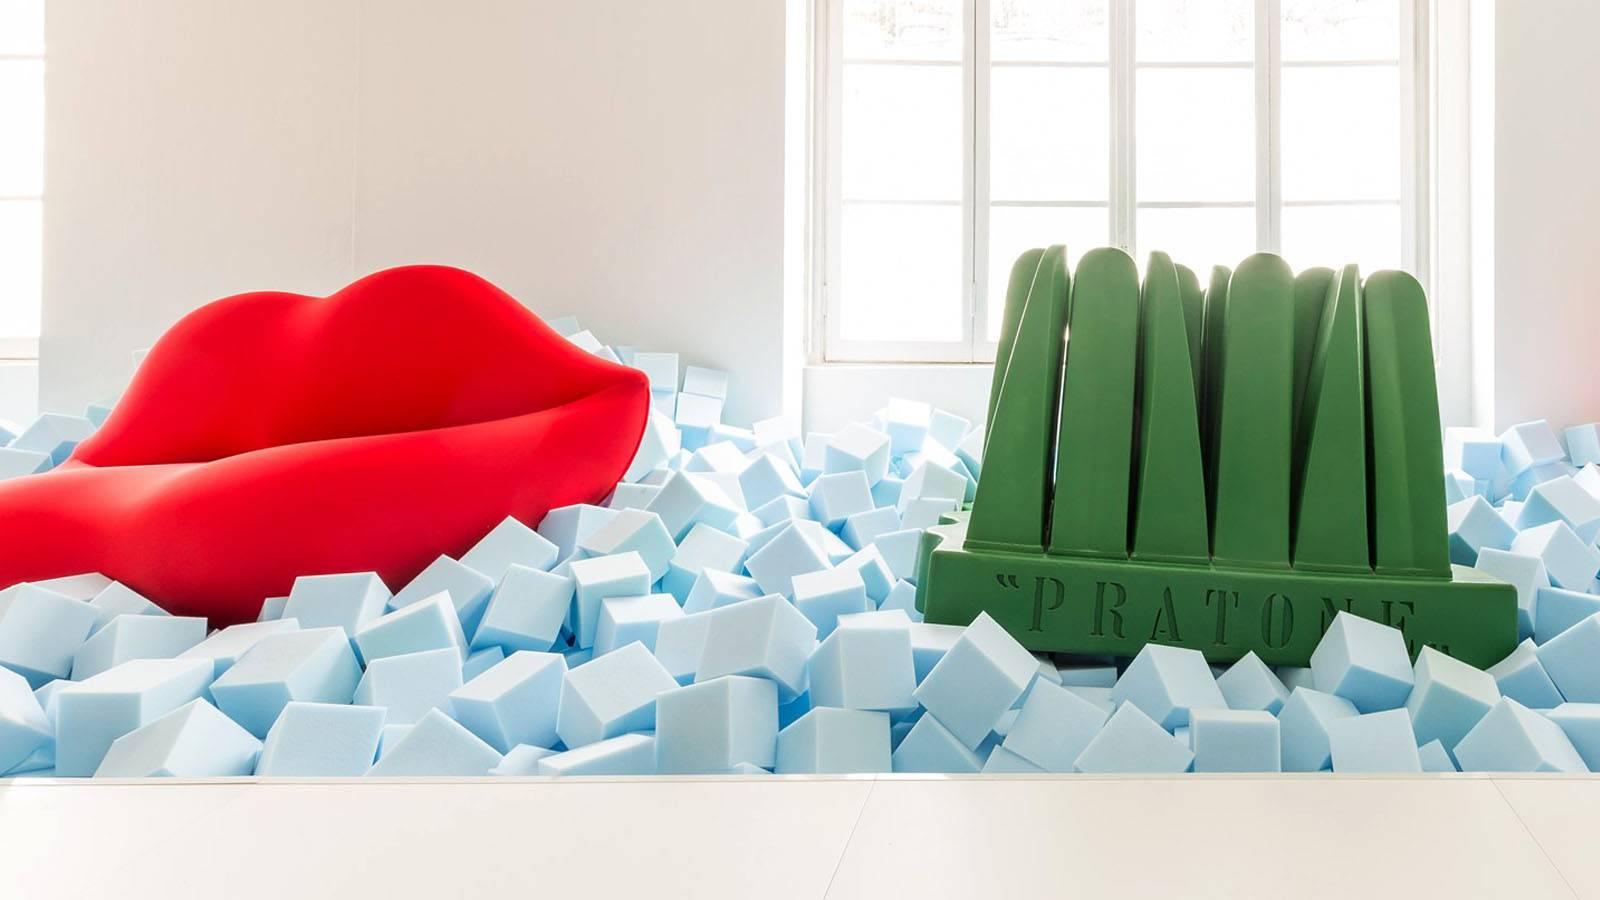 Gufram furniture pratone and bocca presented as an art installation